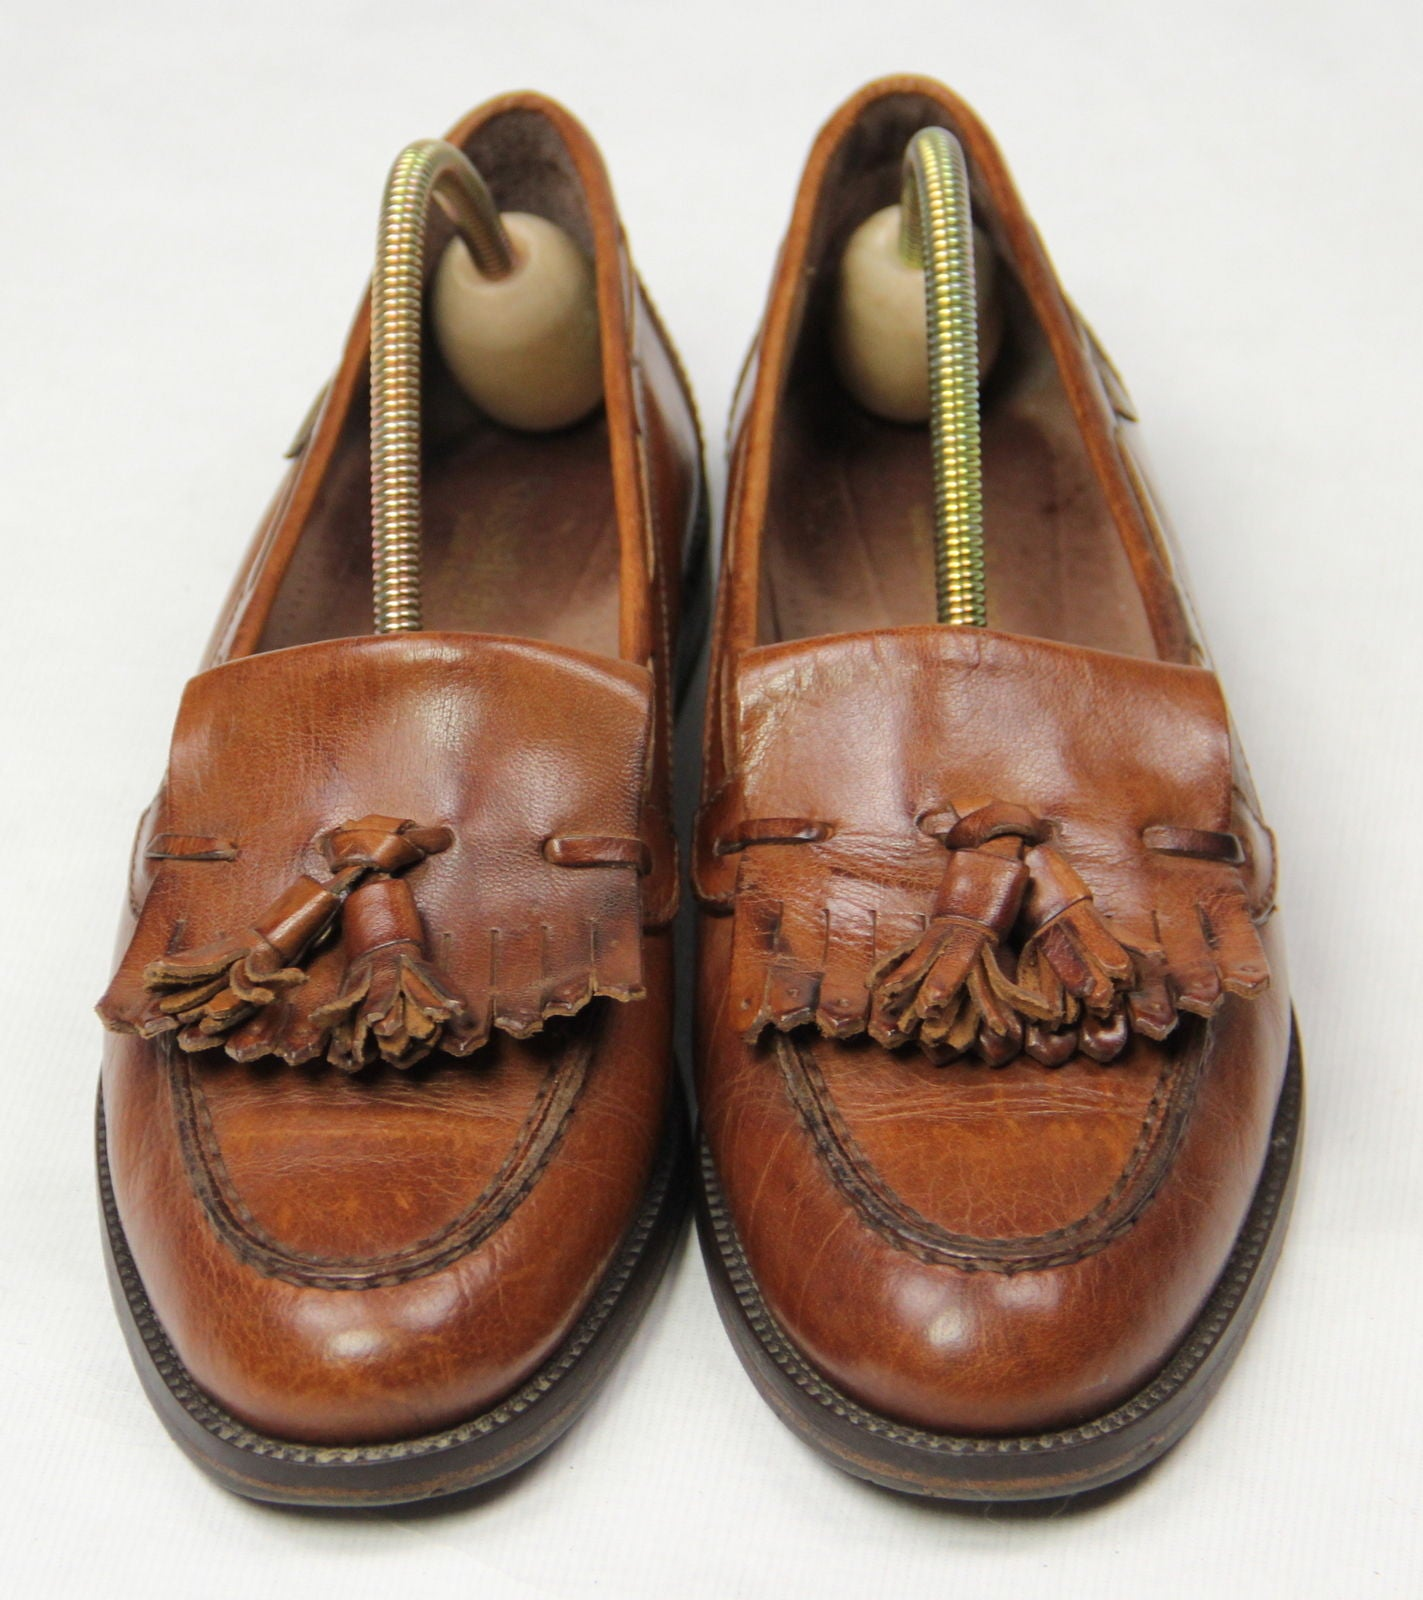 RUSSELL & BROMLEY Brown Leather Tassel Loafers, EU 40, US 9 - second_first